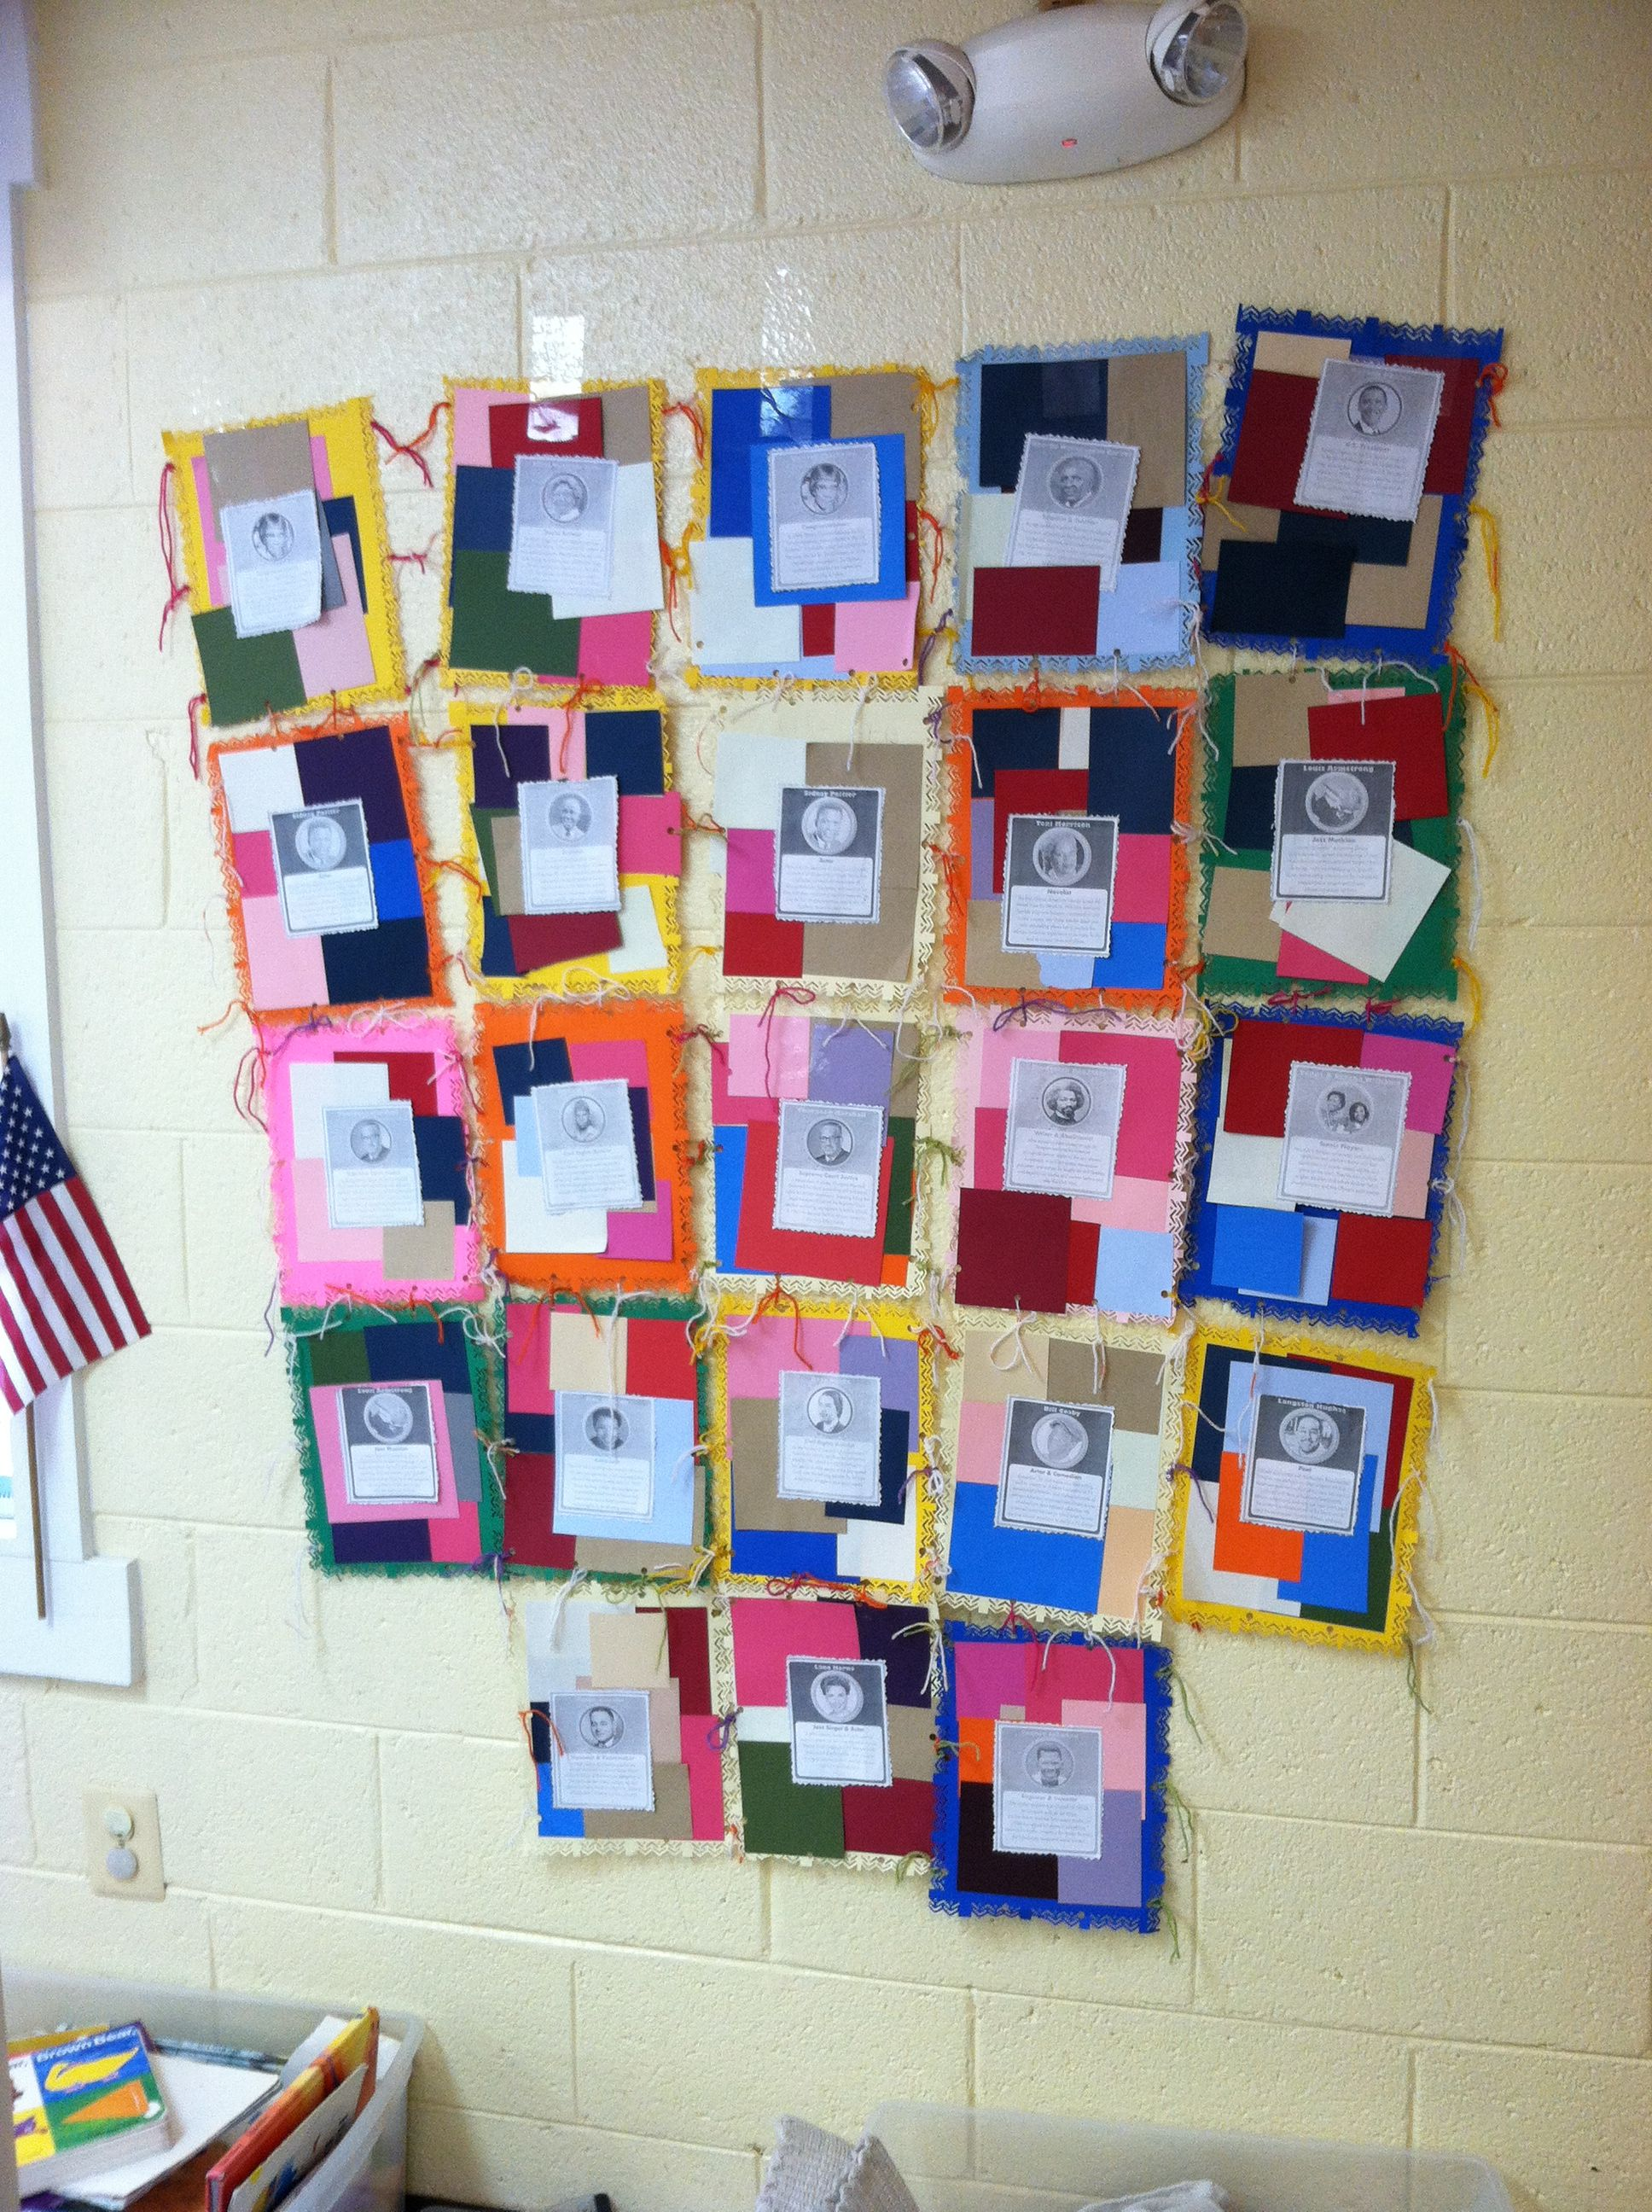 A black history month activity tied into the picture book for Patchwork quilt book